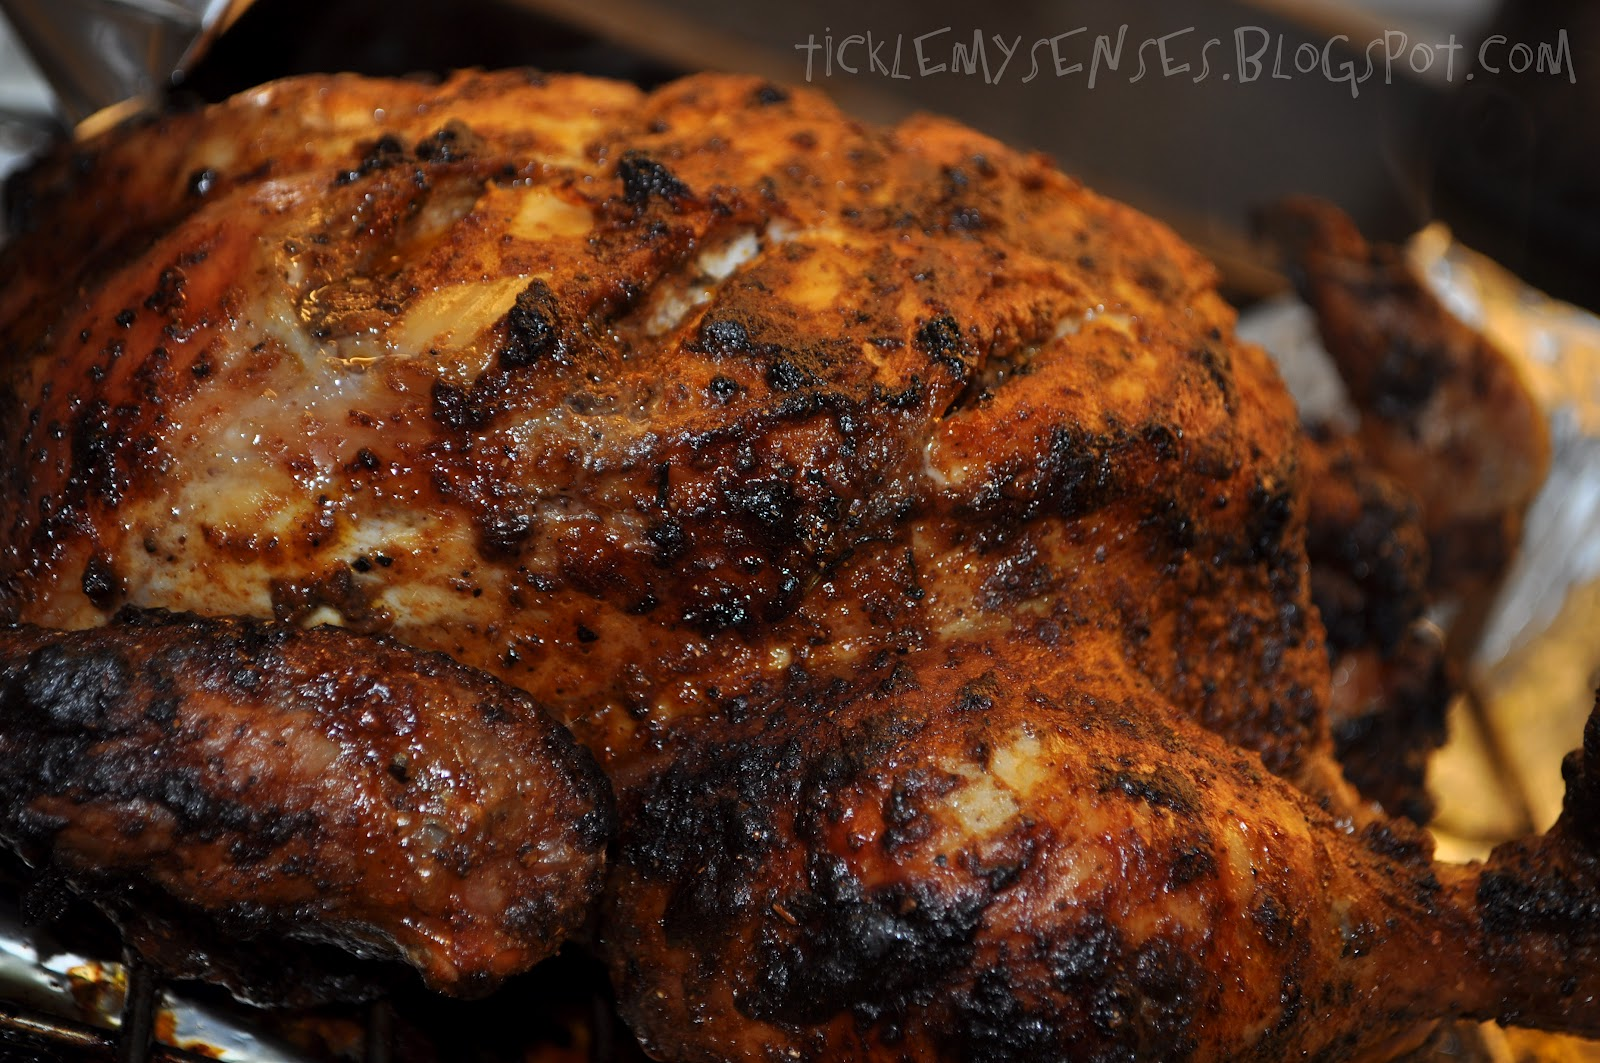 Tickle My Senses: Jamaican Grilled Jerk Chicken